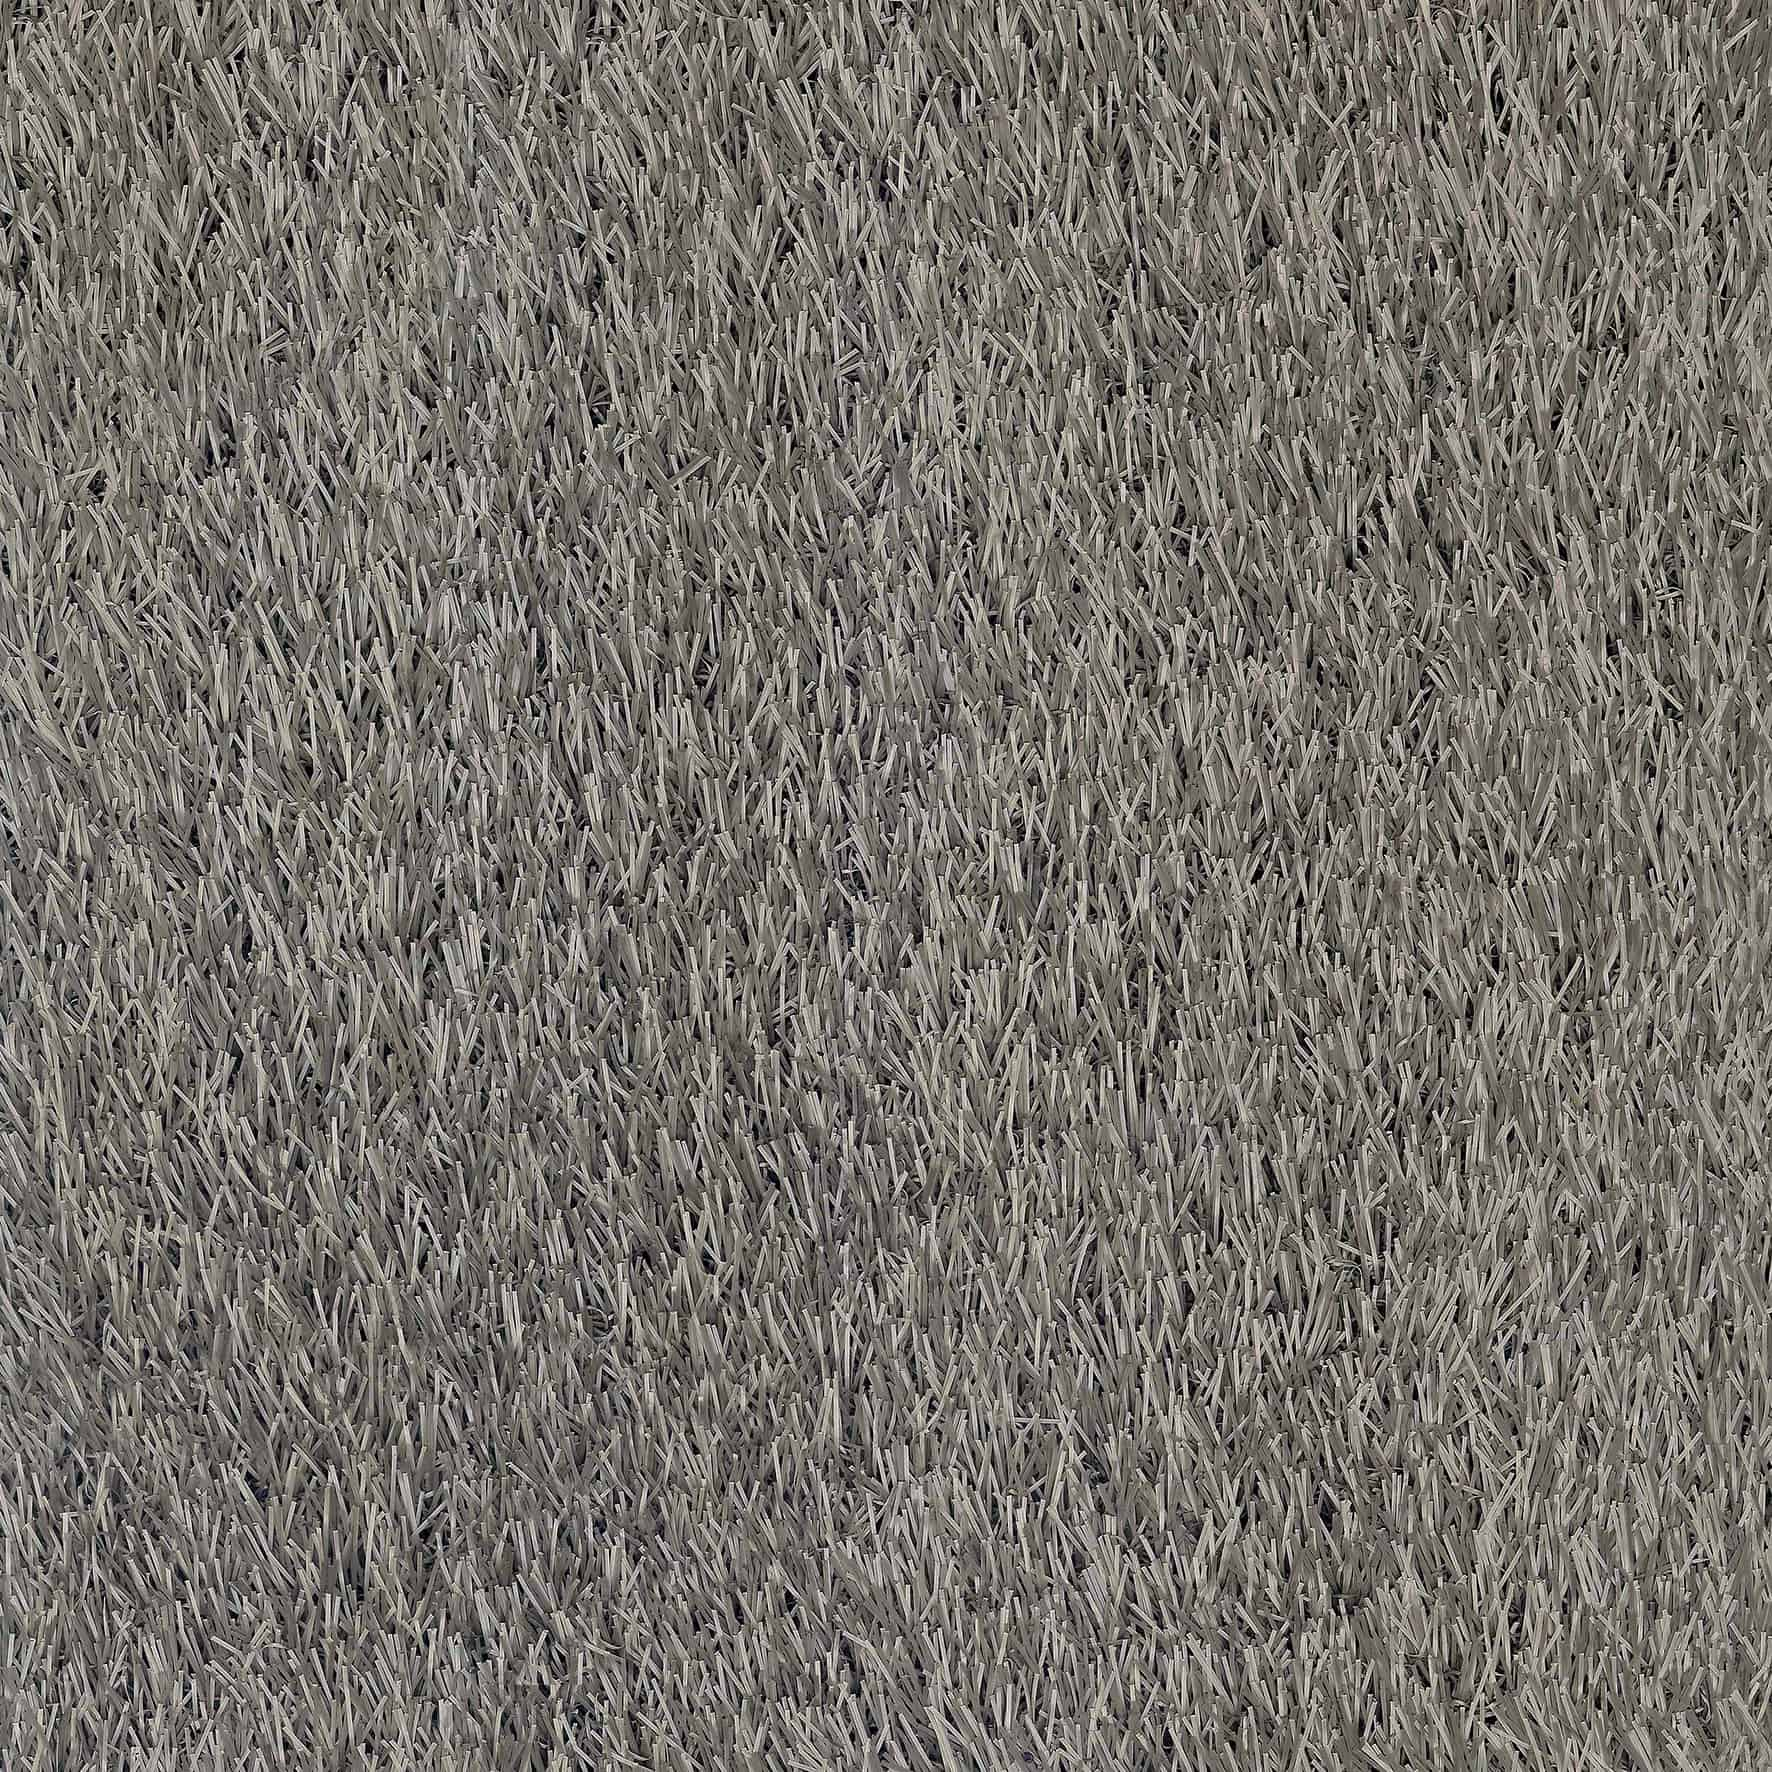 02 Woc Desert Taupe Top View High Res